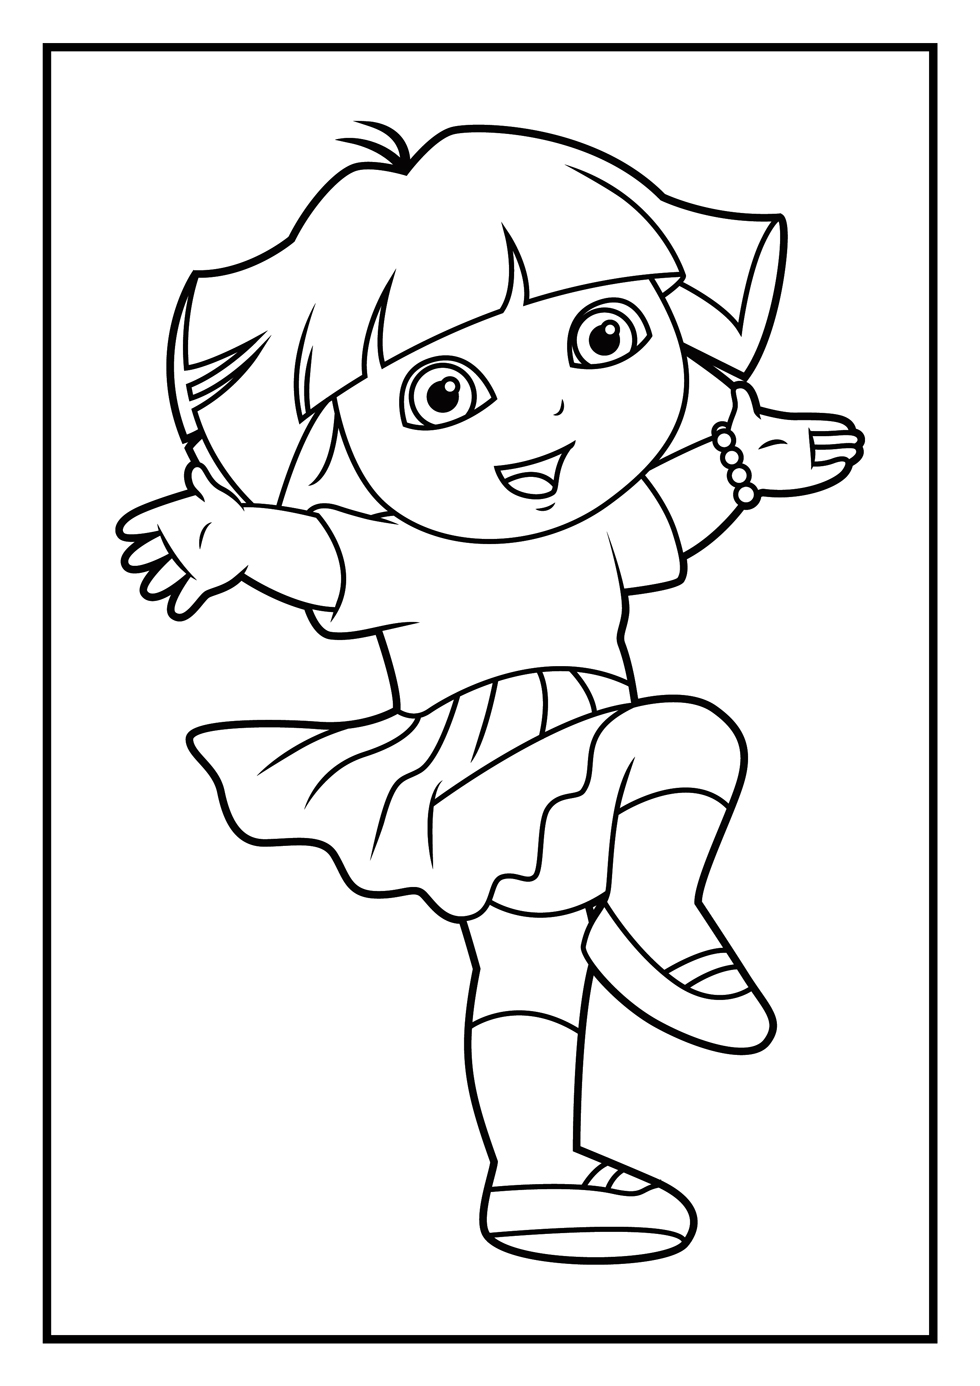 dora colouring sheet print download dora coloring pages to learn new things colouring sheet dora